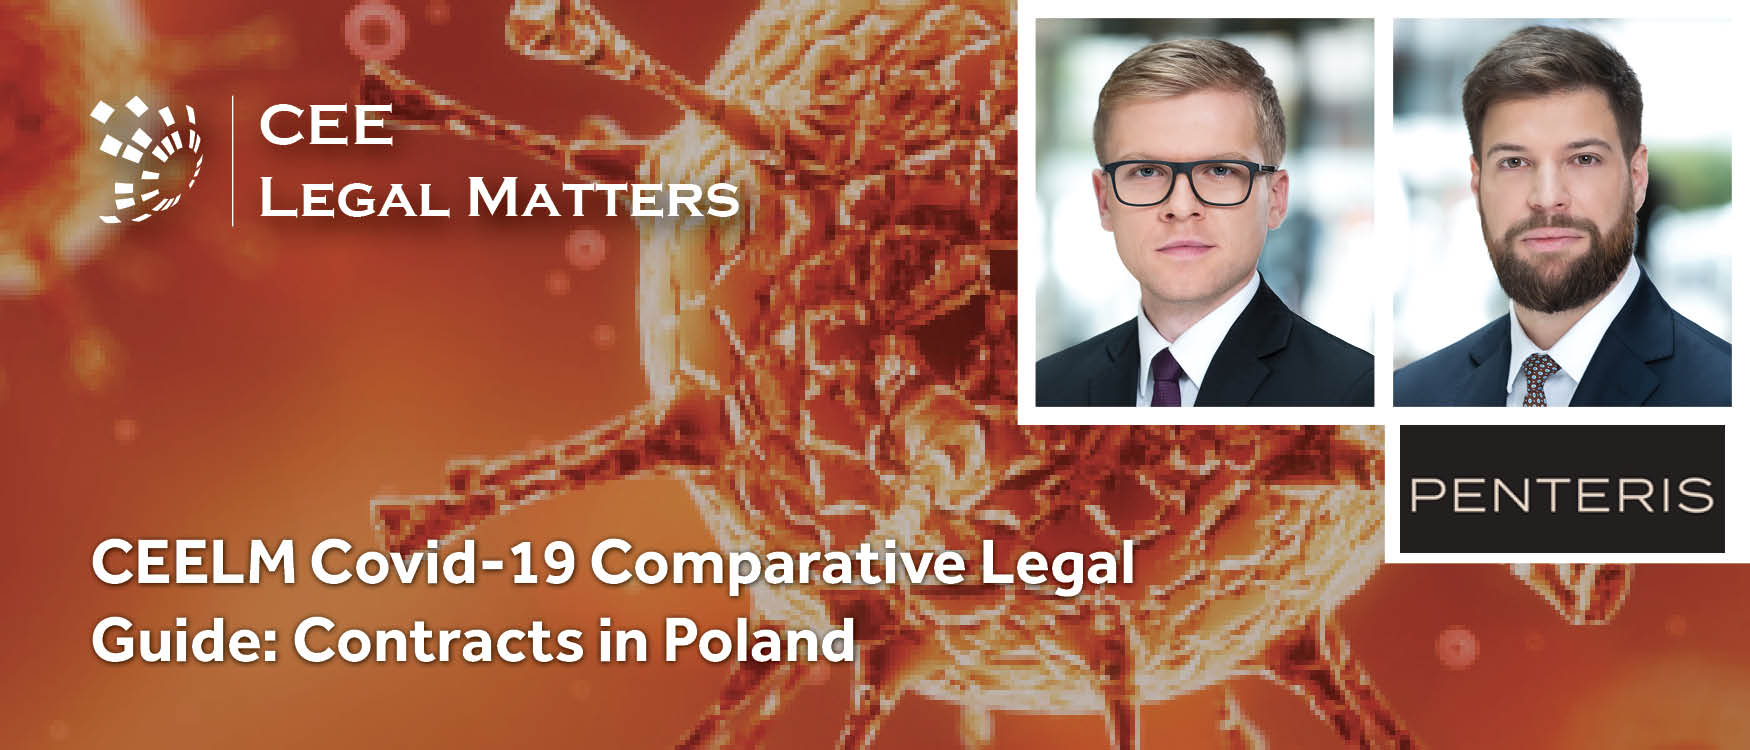 CEELM Covid-19 Comparative Legal Guide: Contracts in Poland